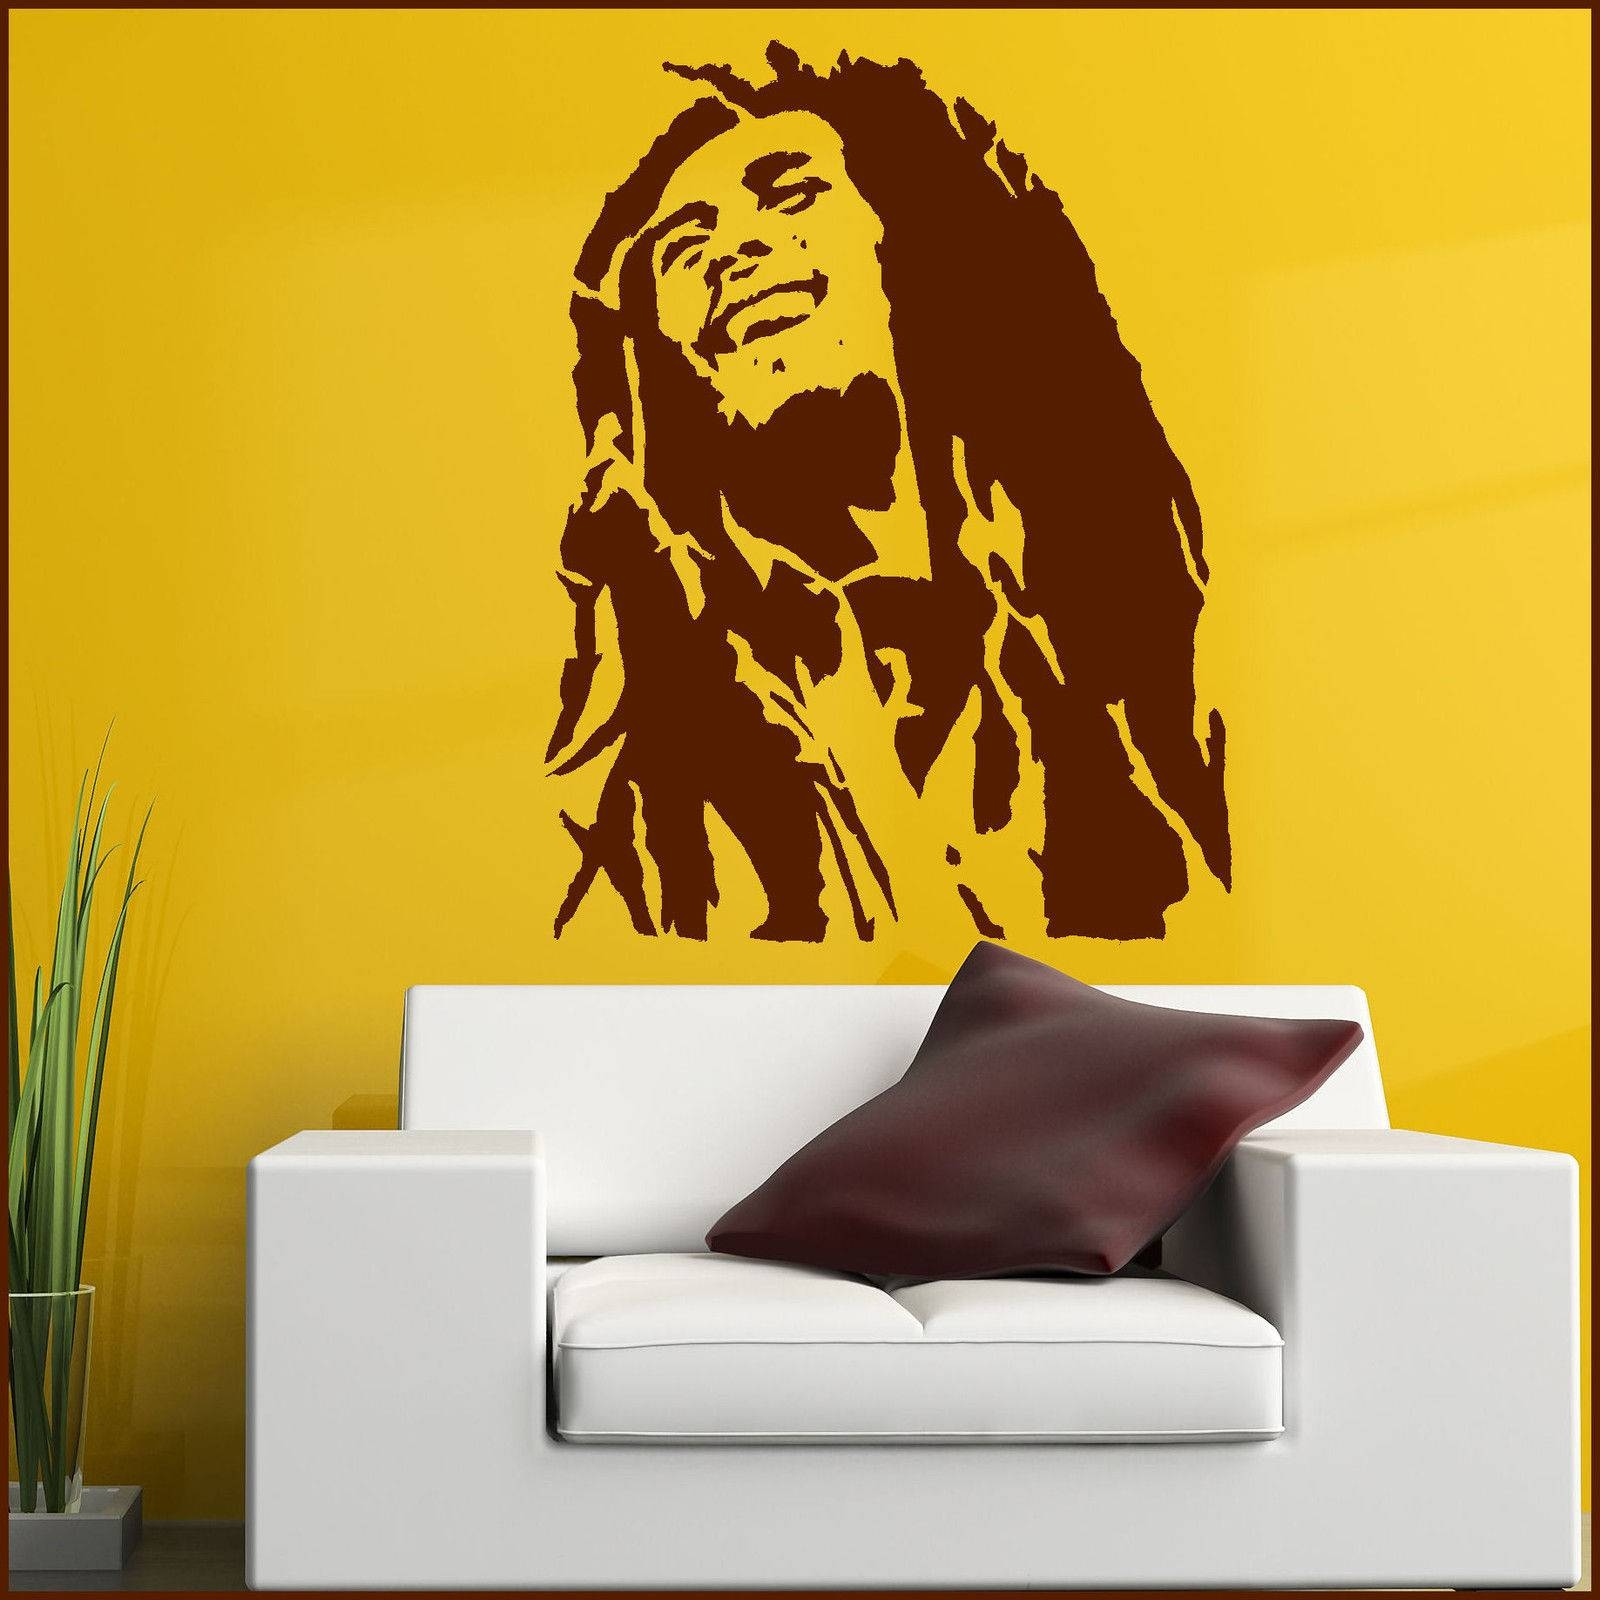 Large Bob Marley Wall Art Sticker In Matt Vinyl Decal Transfer Xl For 2018 Bob Marley Wall Art (View 4 of 30)